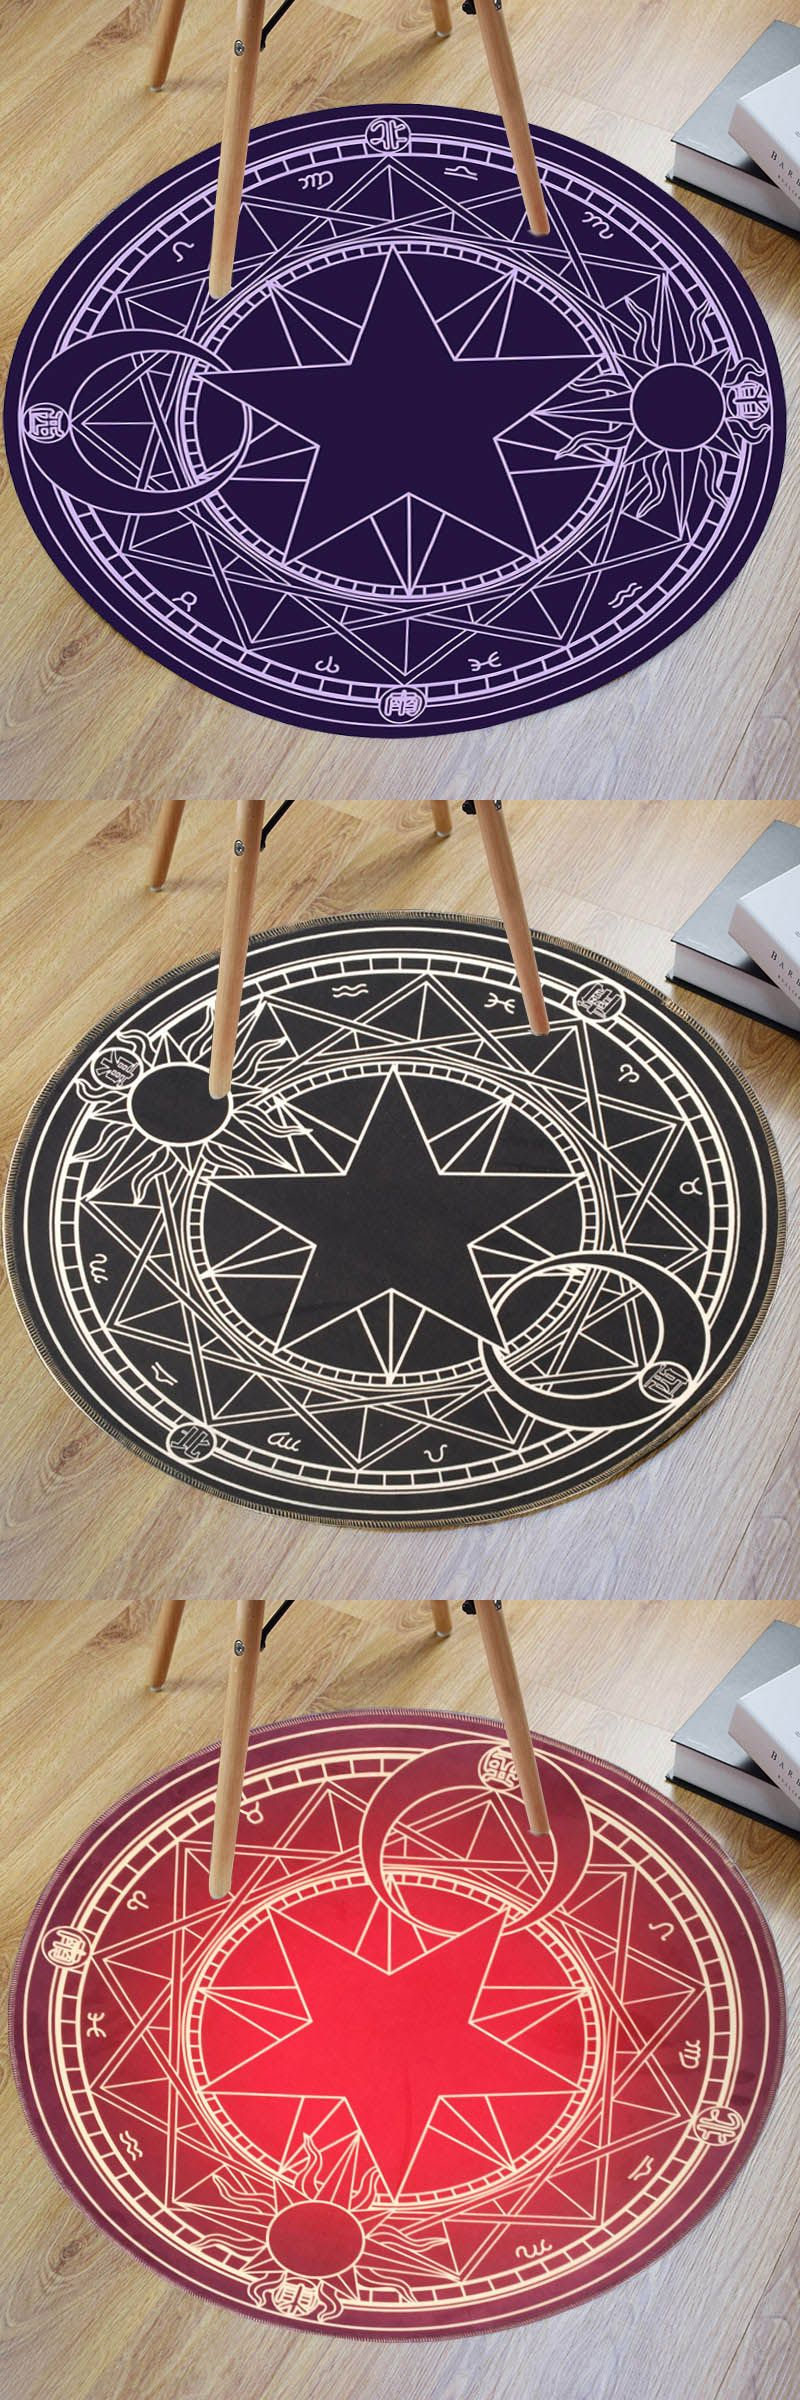 $10.26,Crystal Velvet Fabric Magic Circle Round Bath Rug